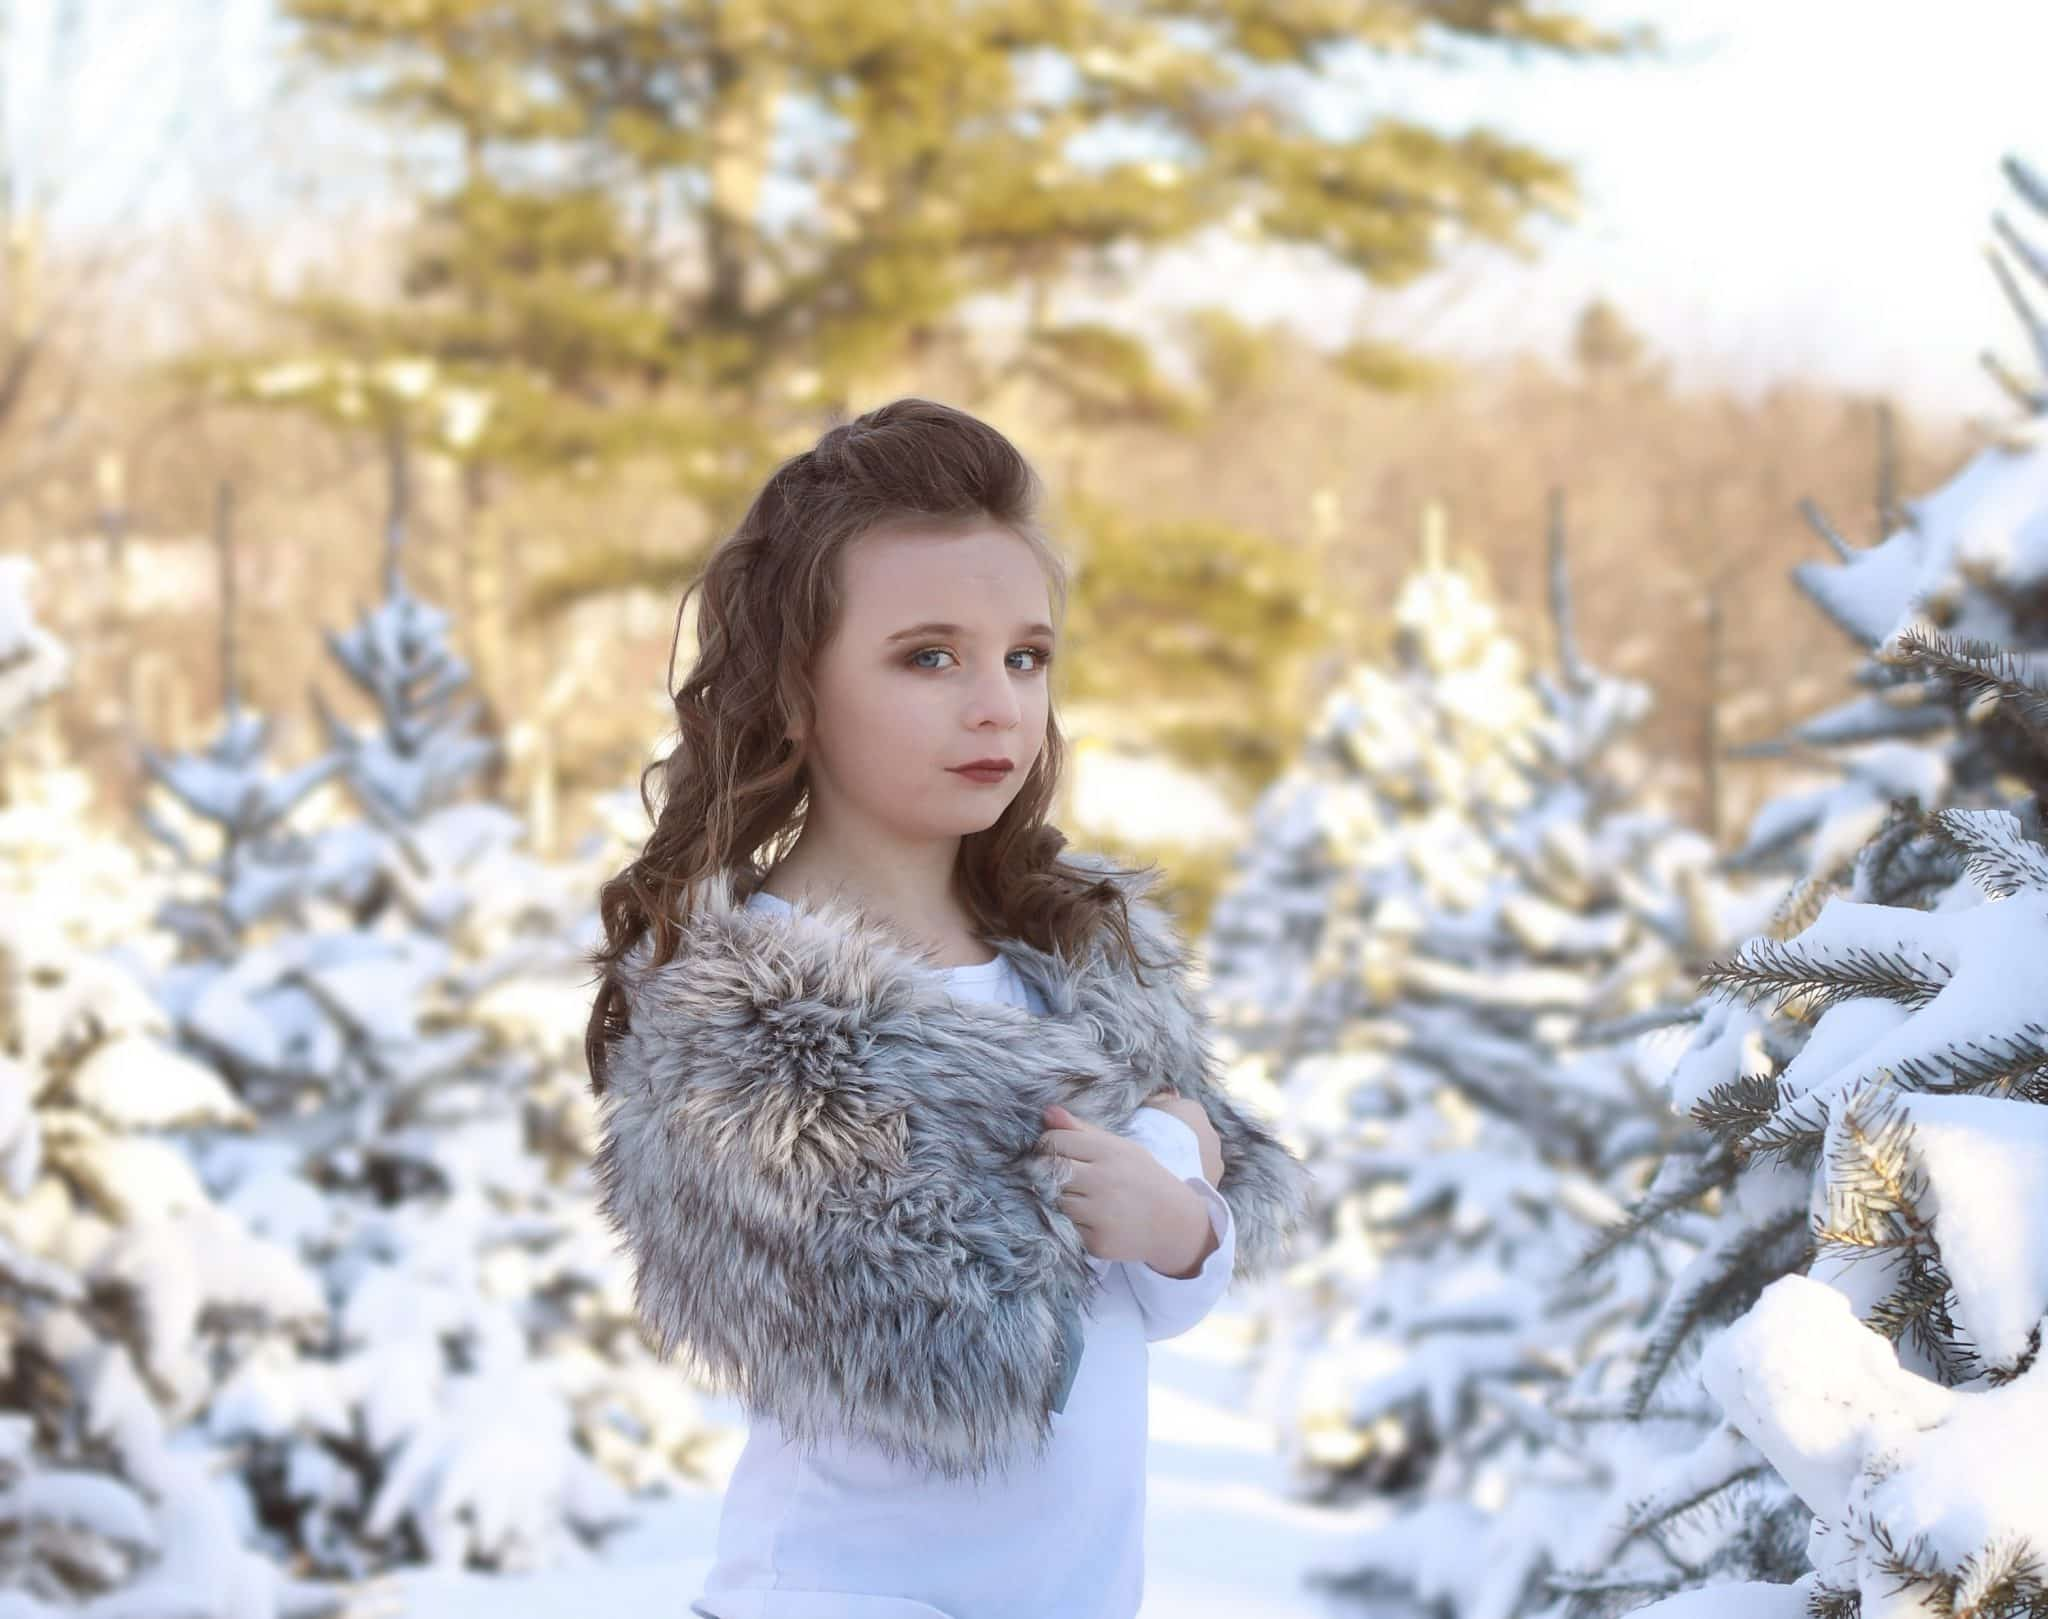 Young girl, white shirt, grey faux fur on her shoulders, curly hair, tree farm, snow covered trees, winter, sideways looking at the camera